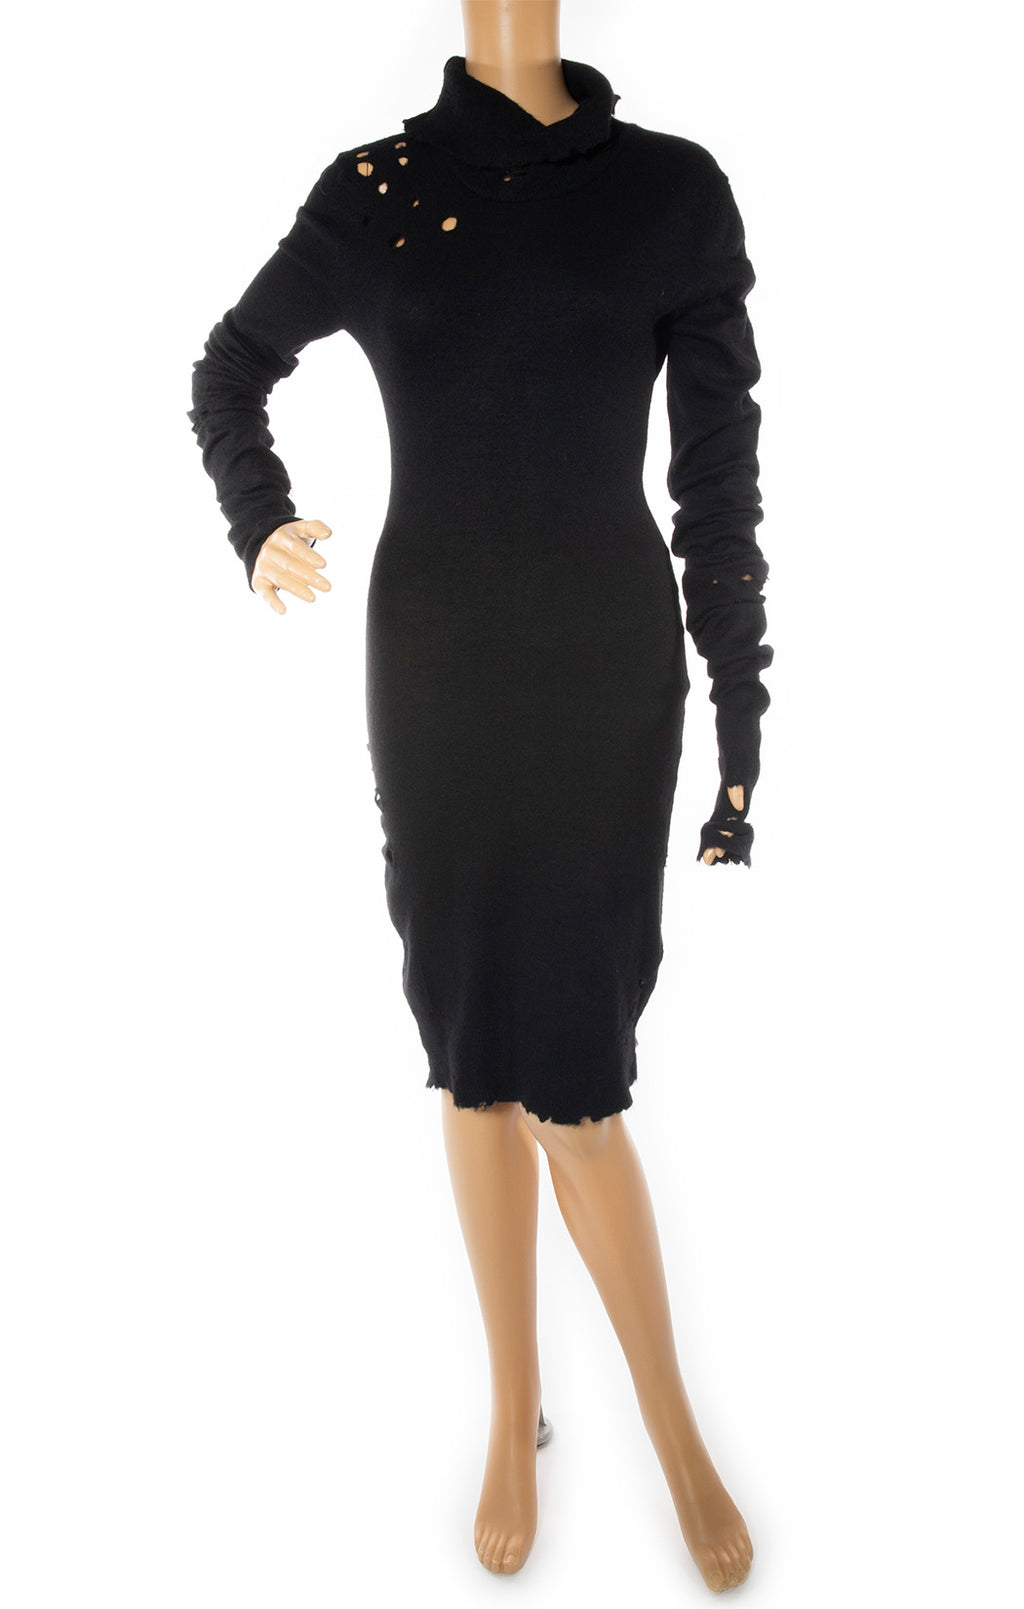 Front view of UNRAVEL Dress Size: Medium